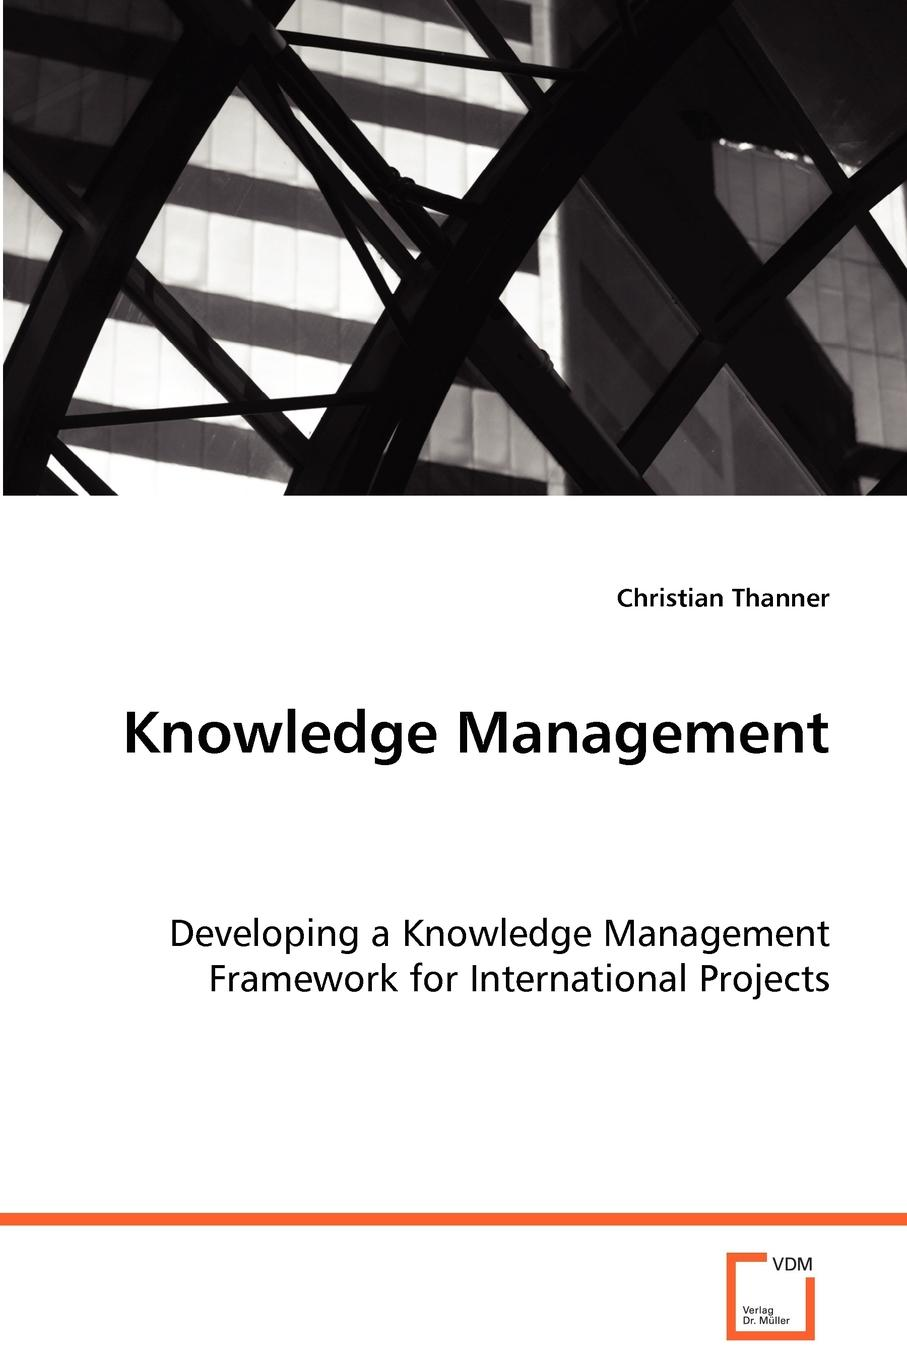 Christian Thanner Knowledge Management - Developing a Knowledge Management Framework for International Projects mohamed msoroka project design and management knowledge and project management skills